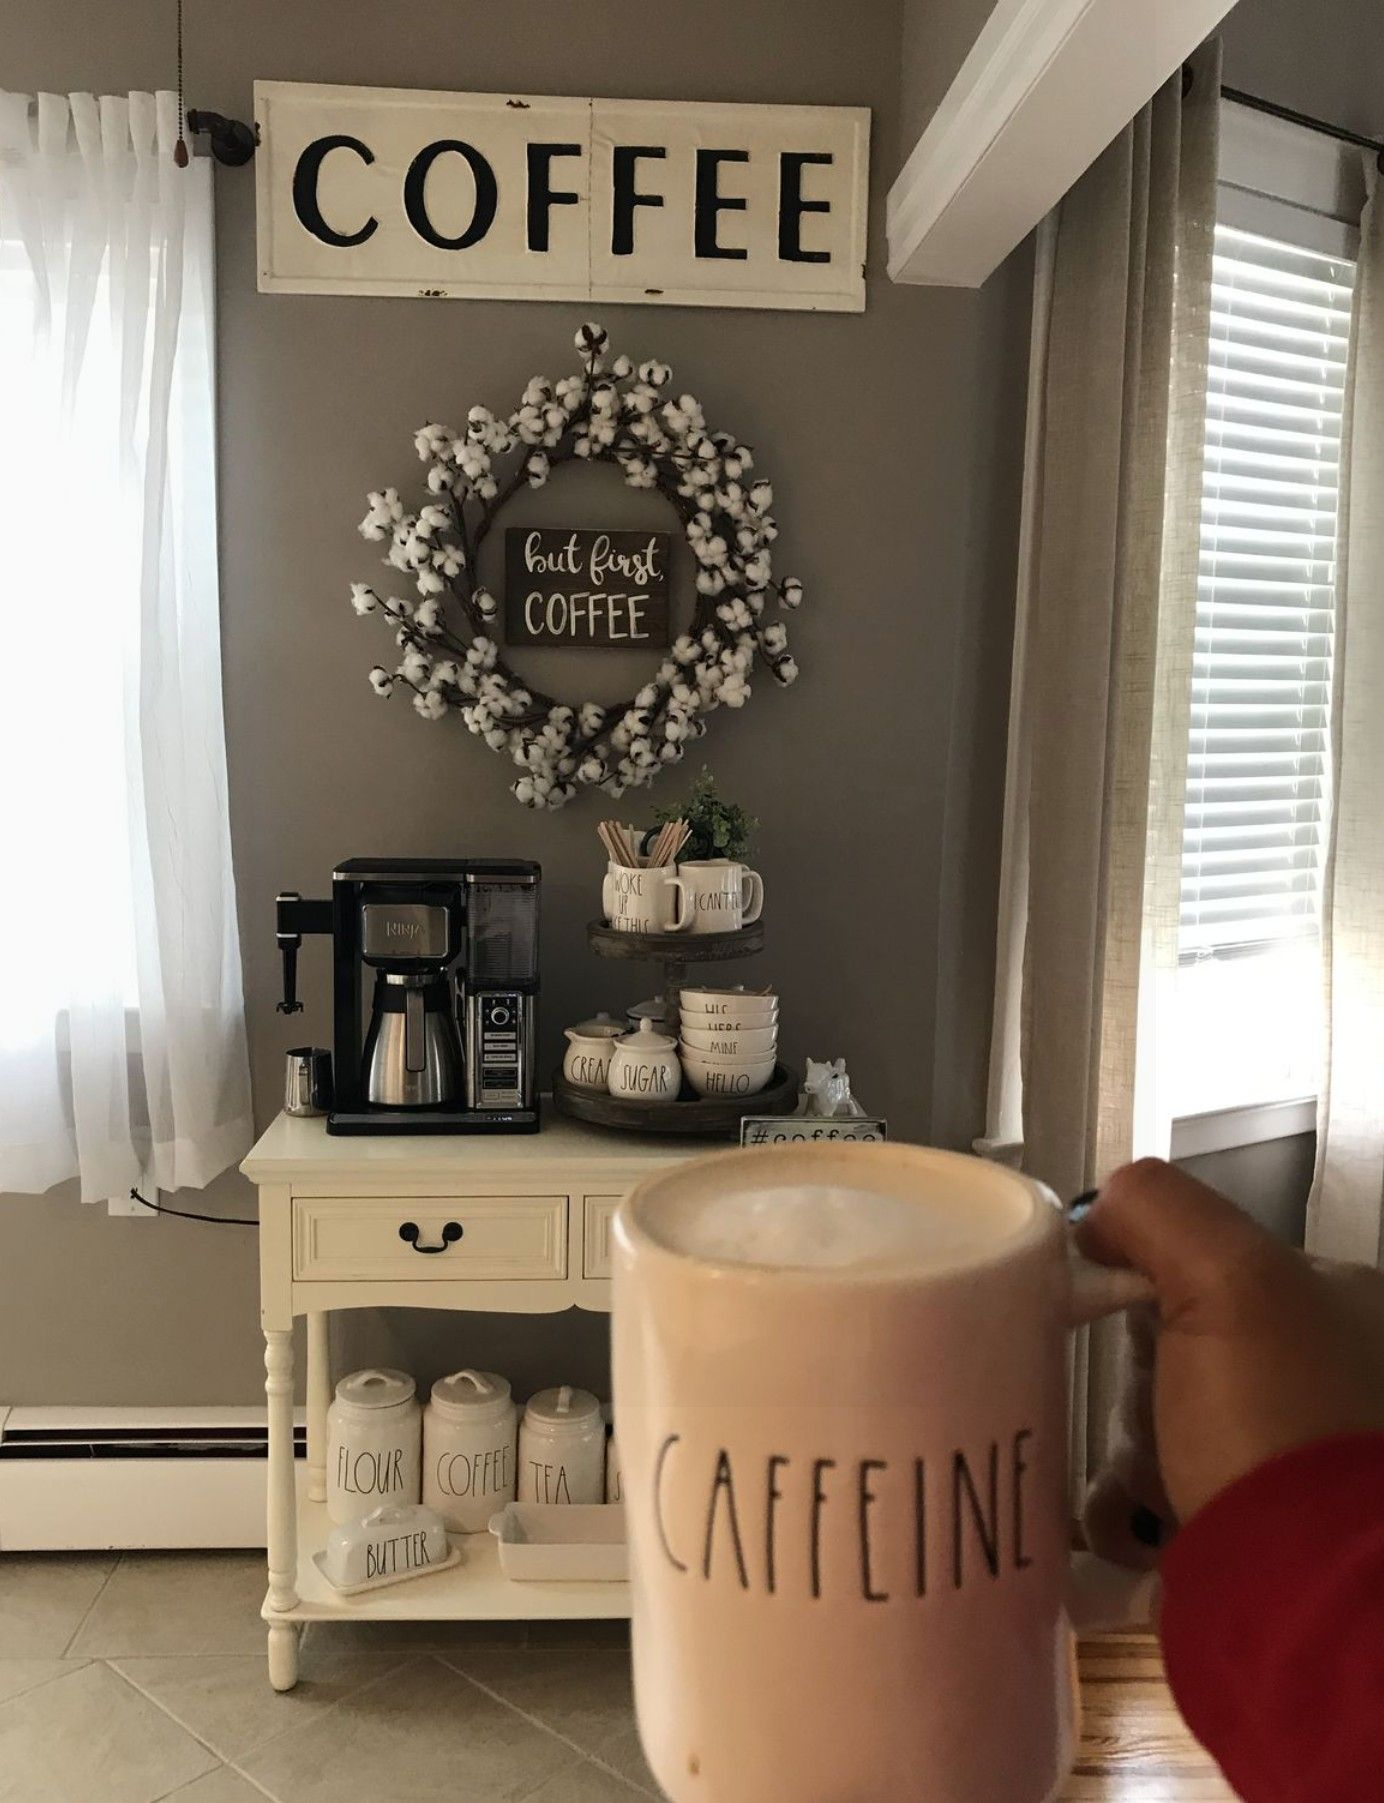 Pin by Jessica Steel on Decorating tips | Pinterest | Coffee signs ...